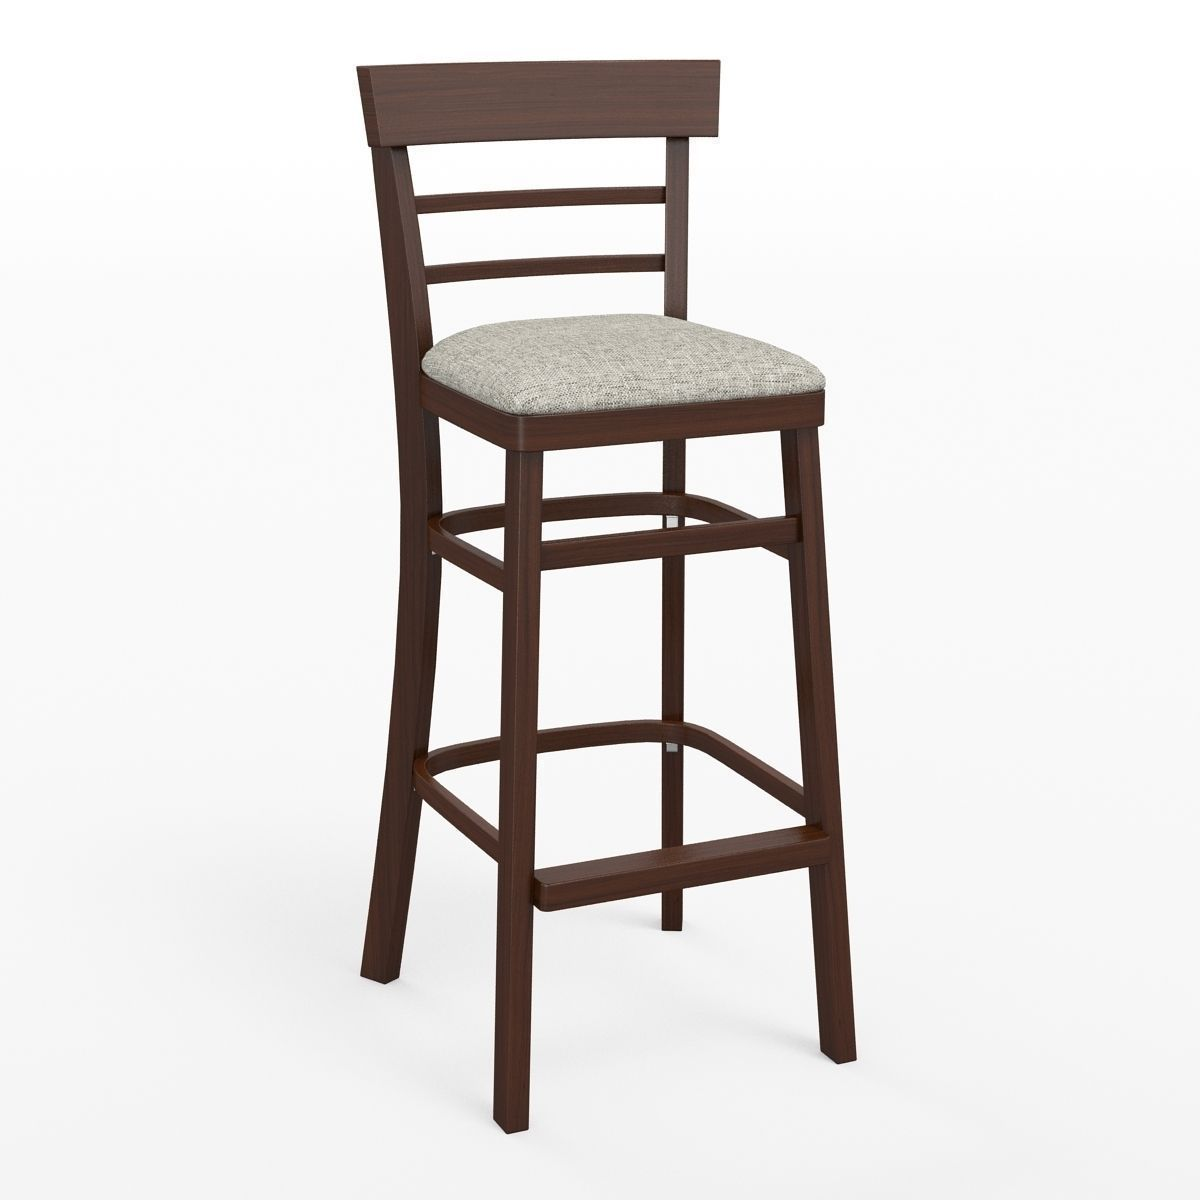 wooden bar stool 3d model max obj fbx 1